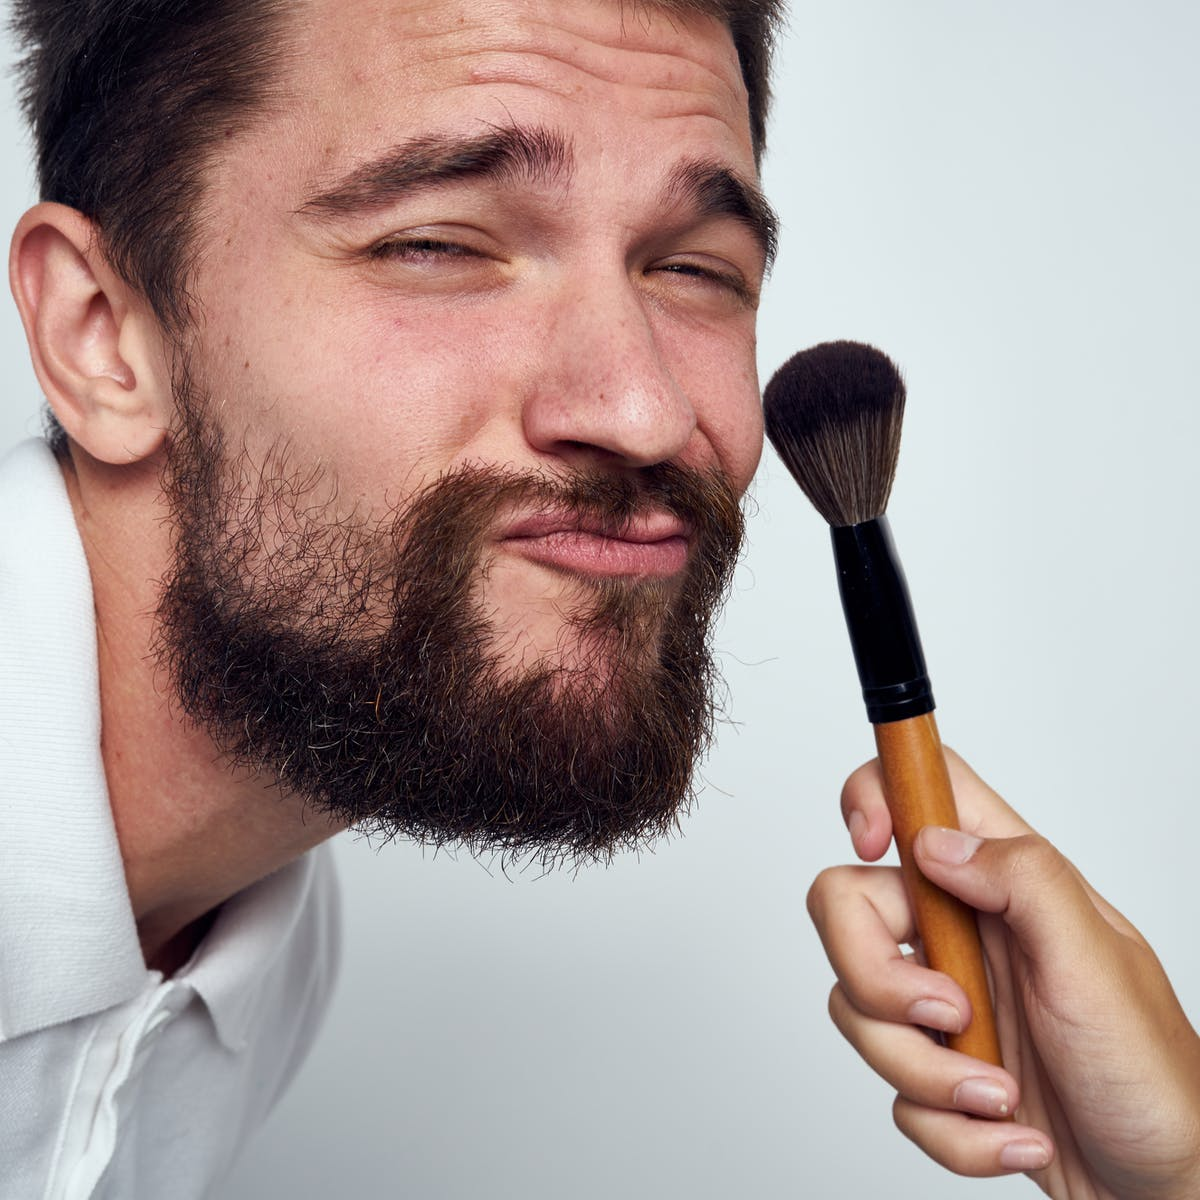 Why More Men Are Wearing Makeup Than